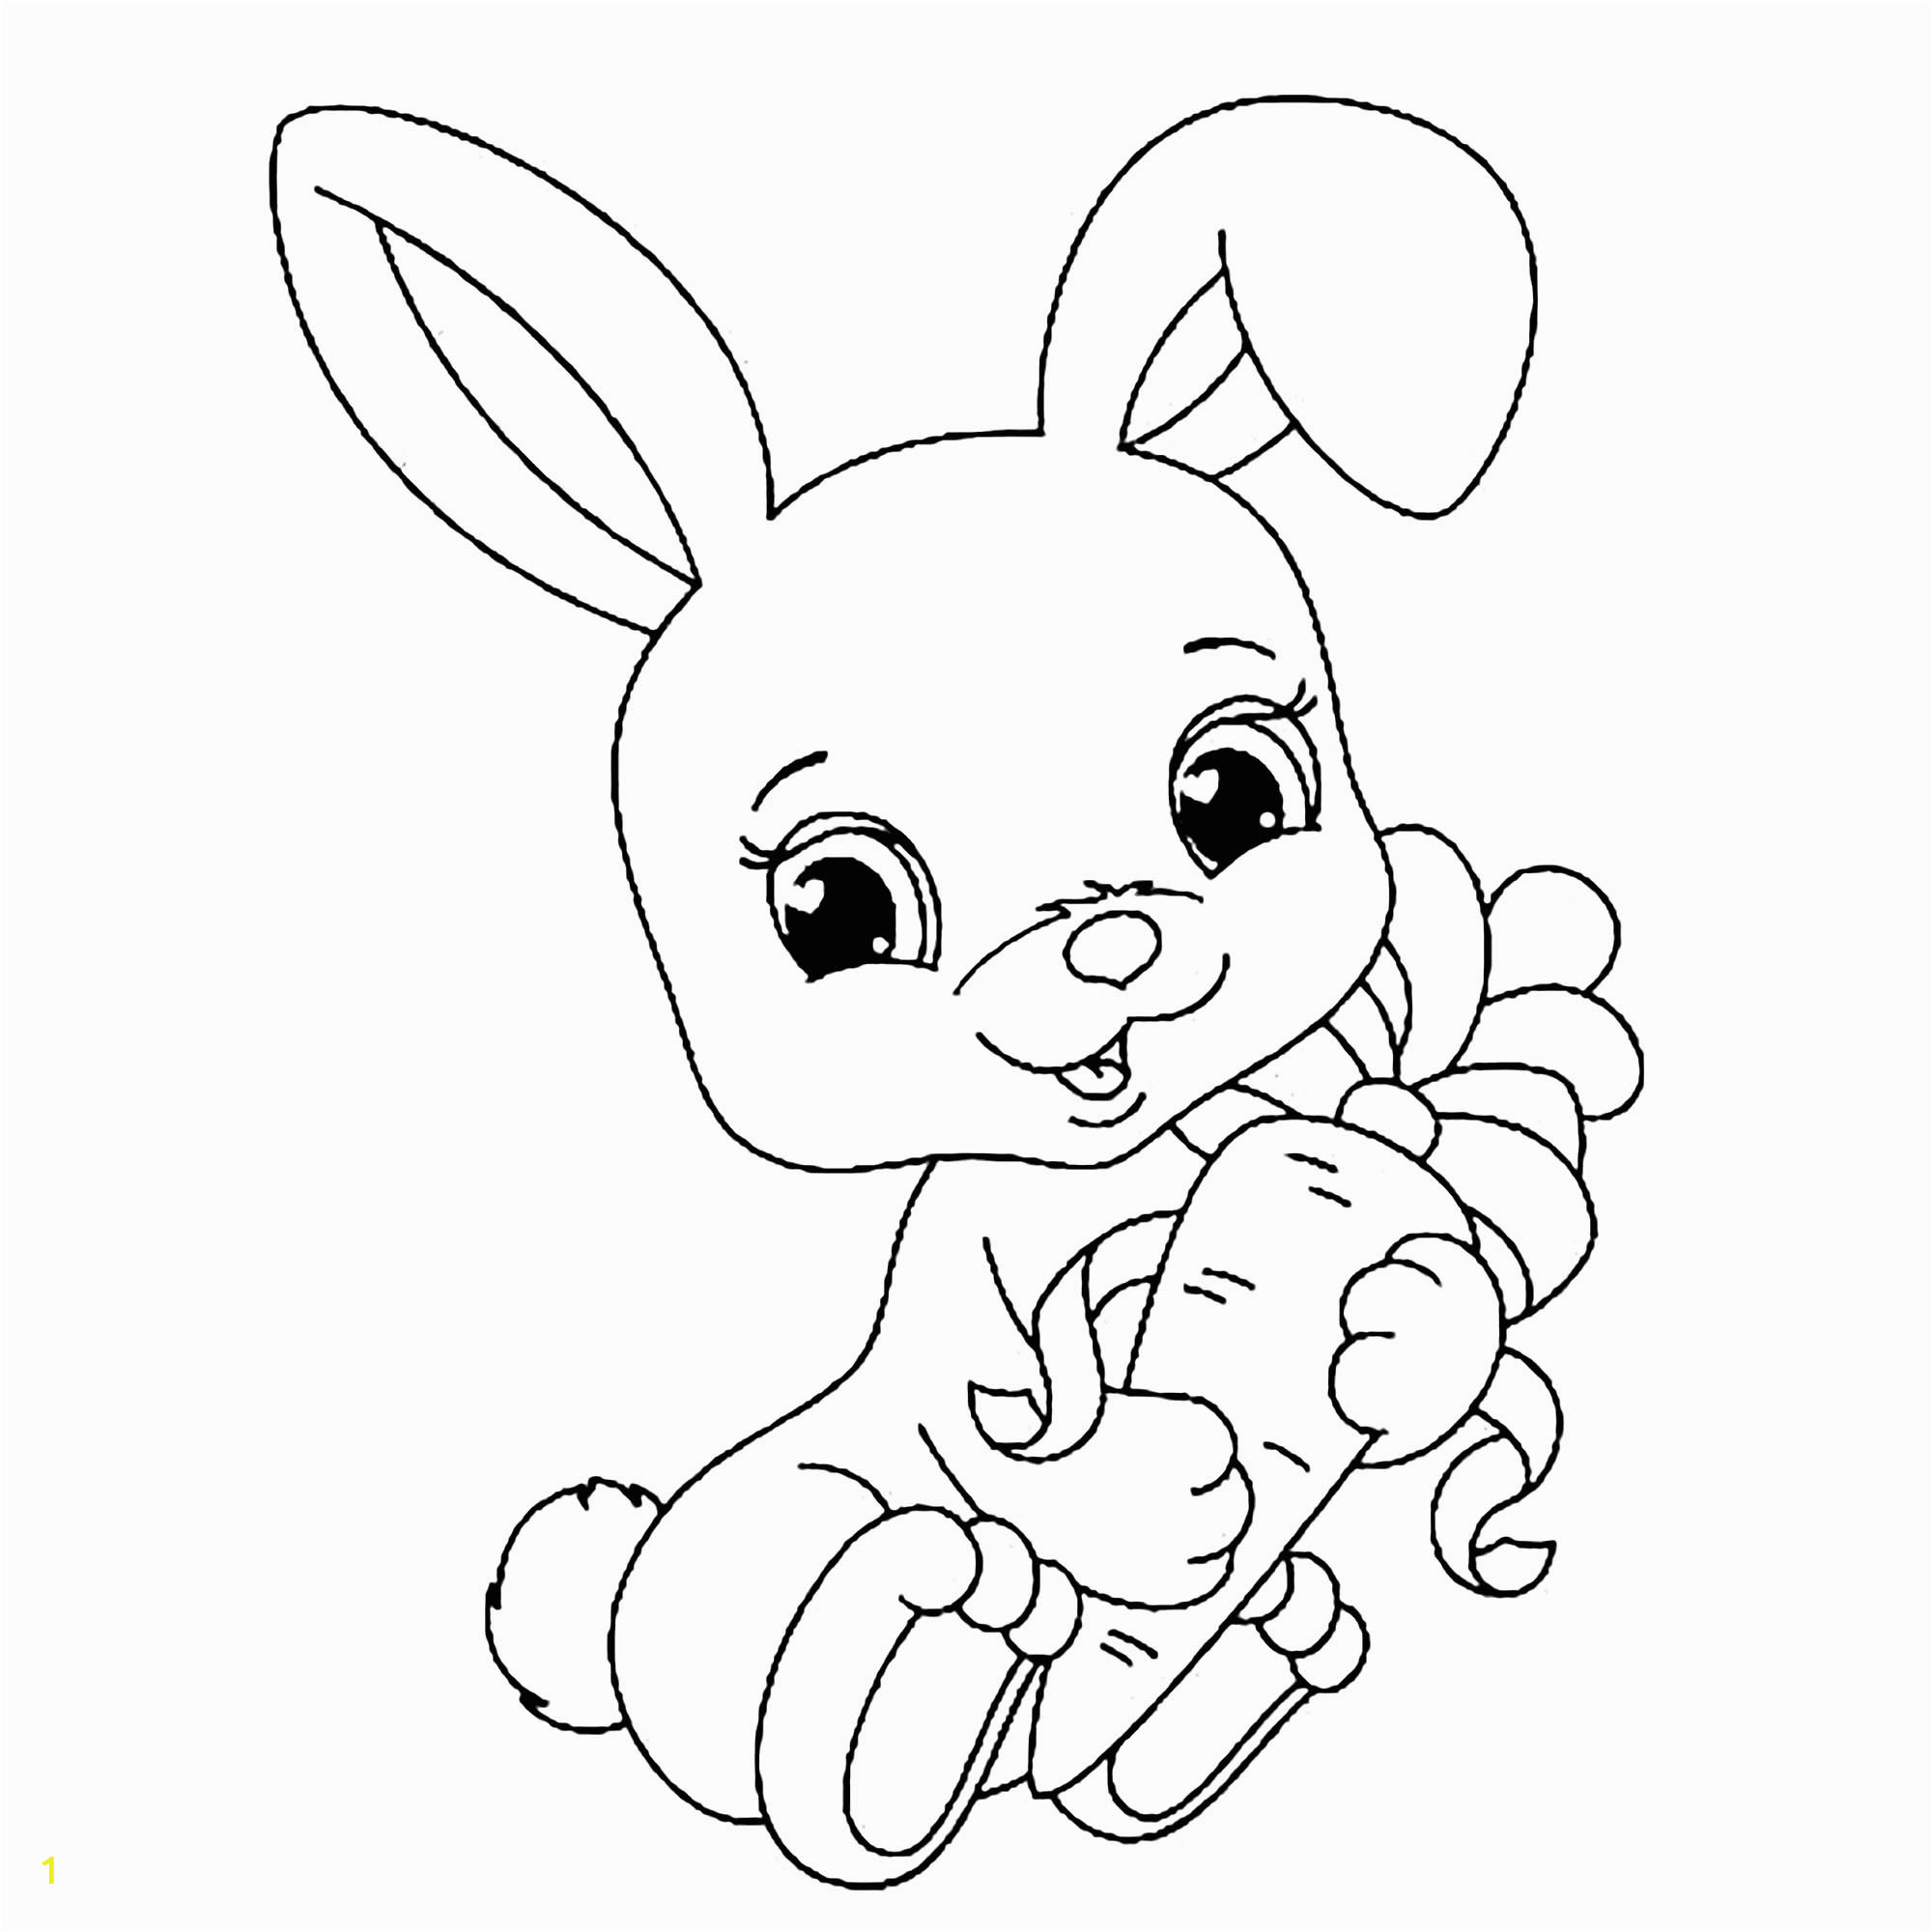 best coloring rabbit free to color for children kids colouring easter bunny book in colour peter pictures sheet by number printable print childrens templates toddlers books